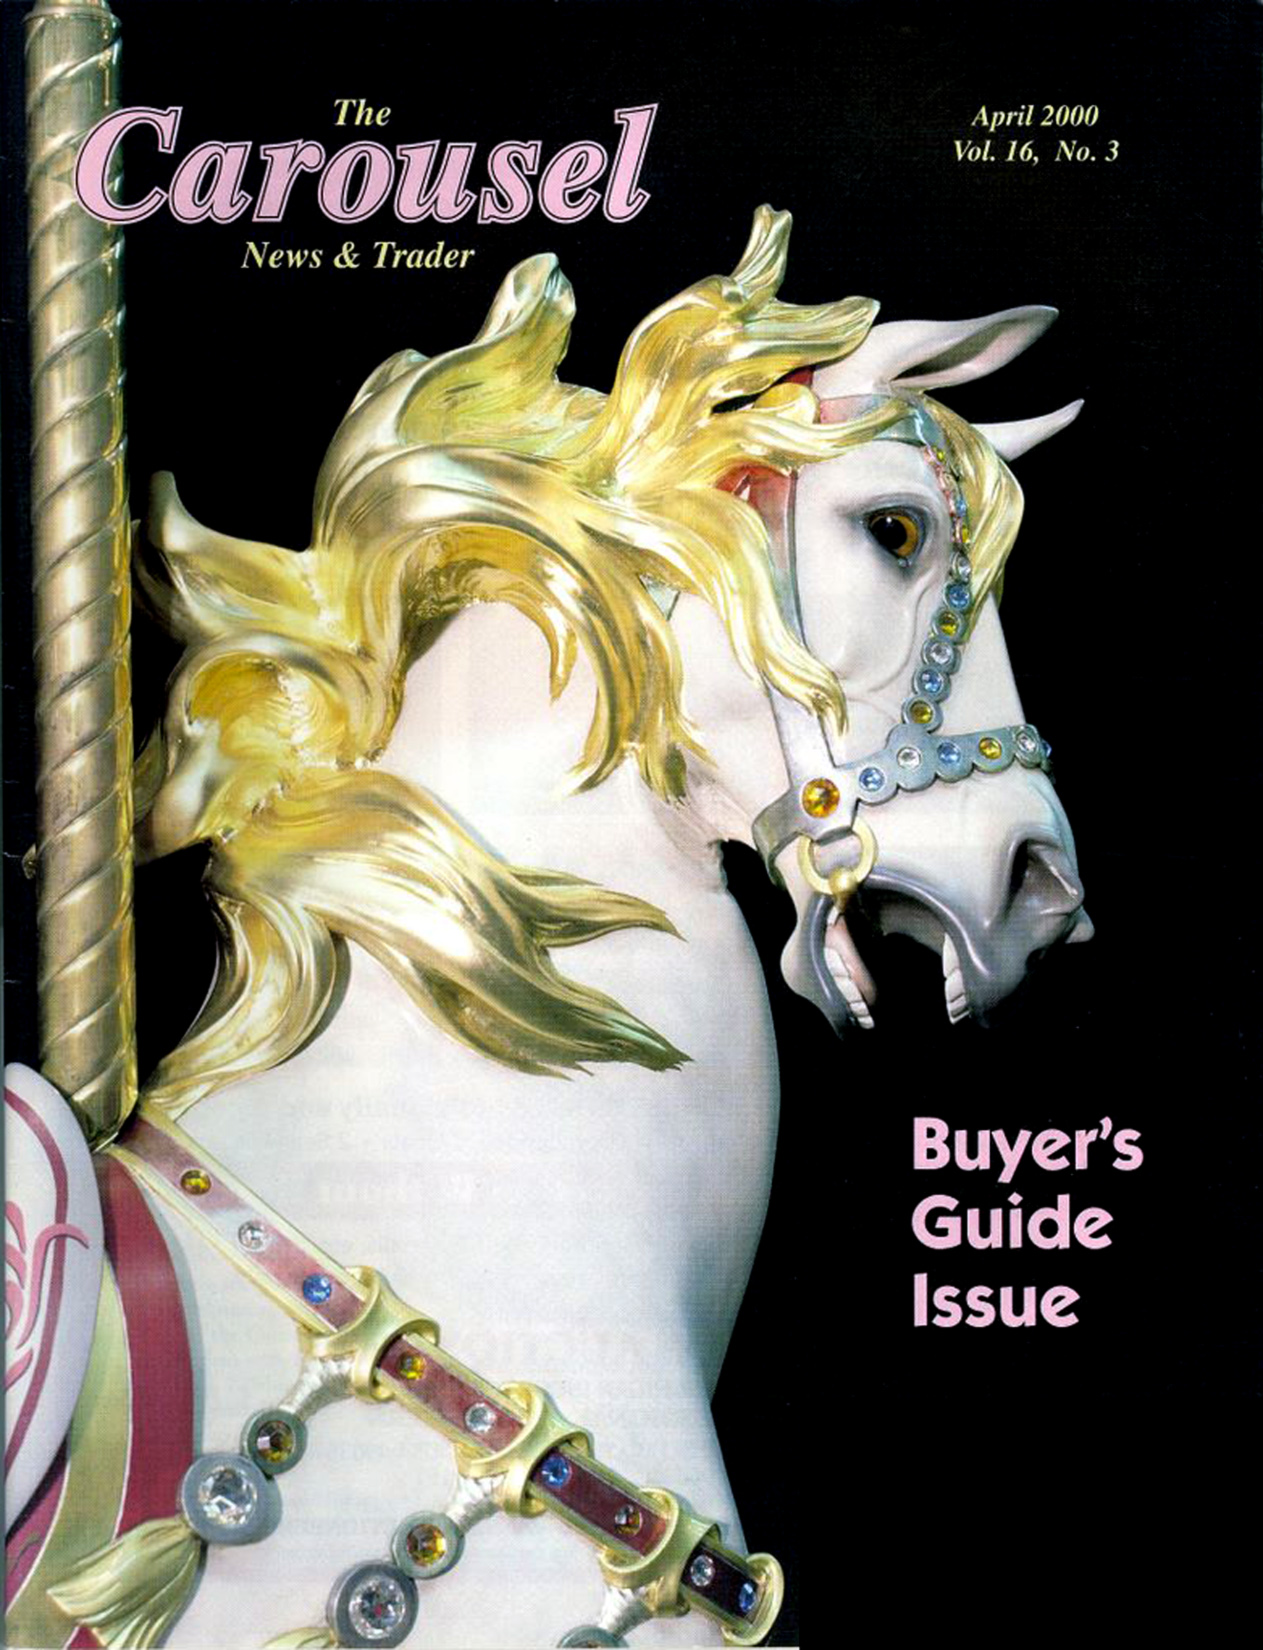 cnt_04_2000-Illions-Supreme-carousel-horse-Bill-Manns-photo